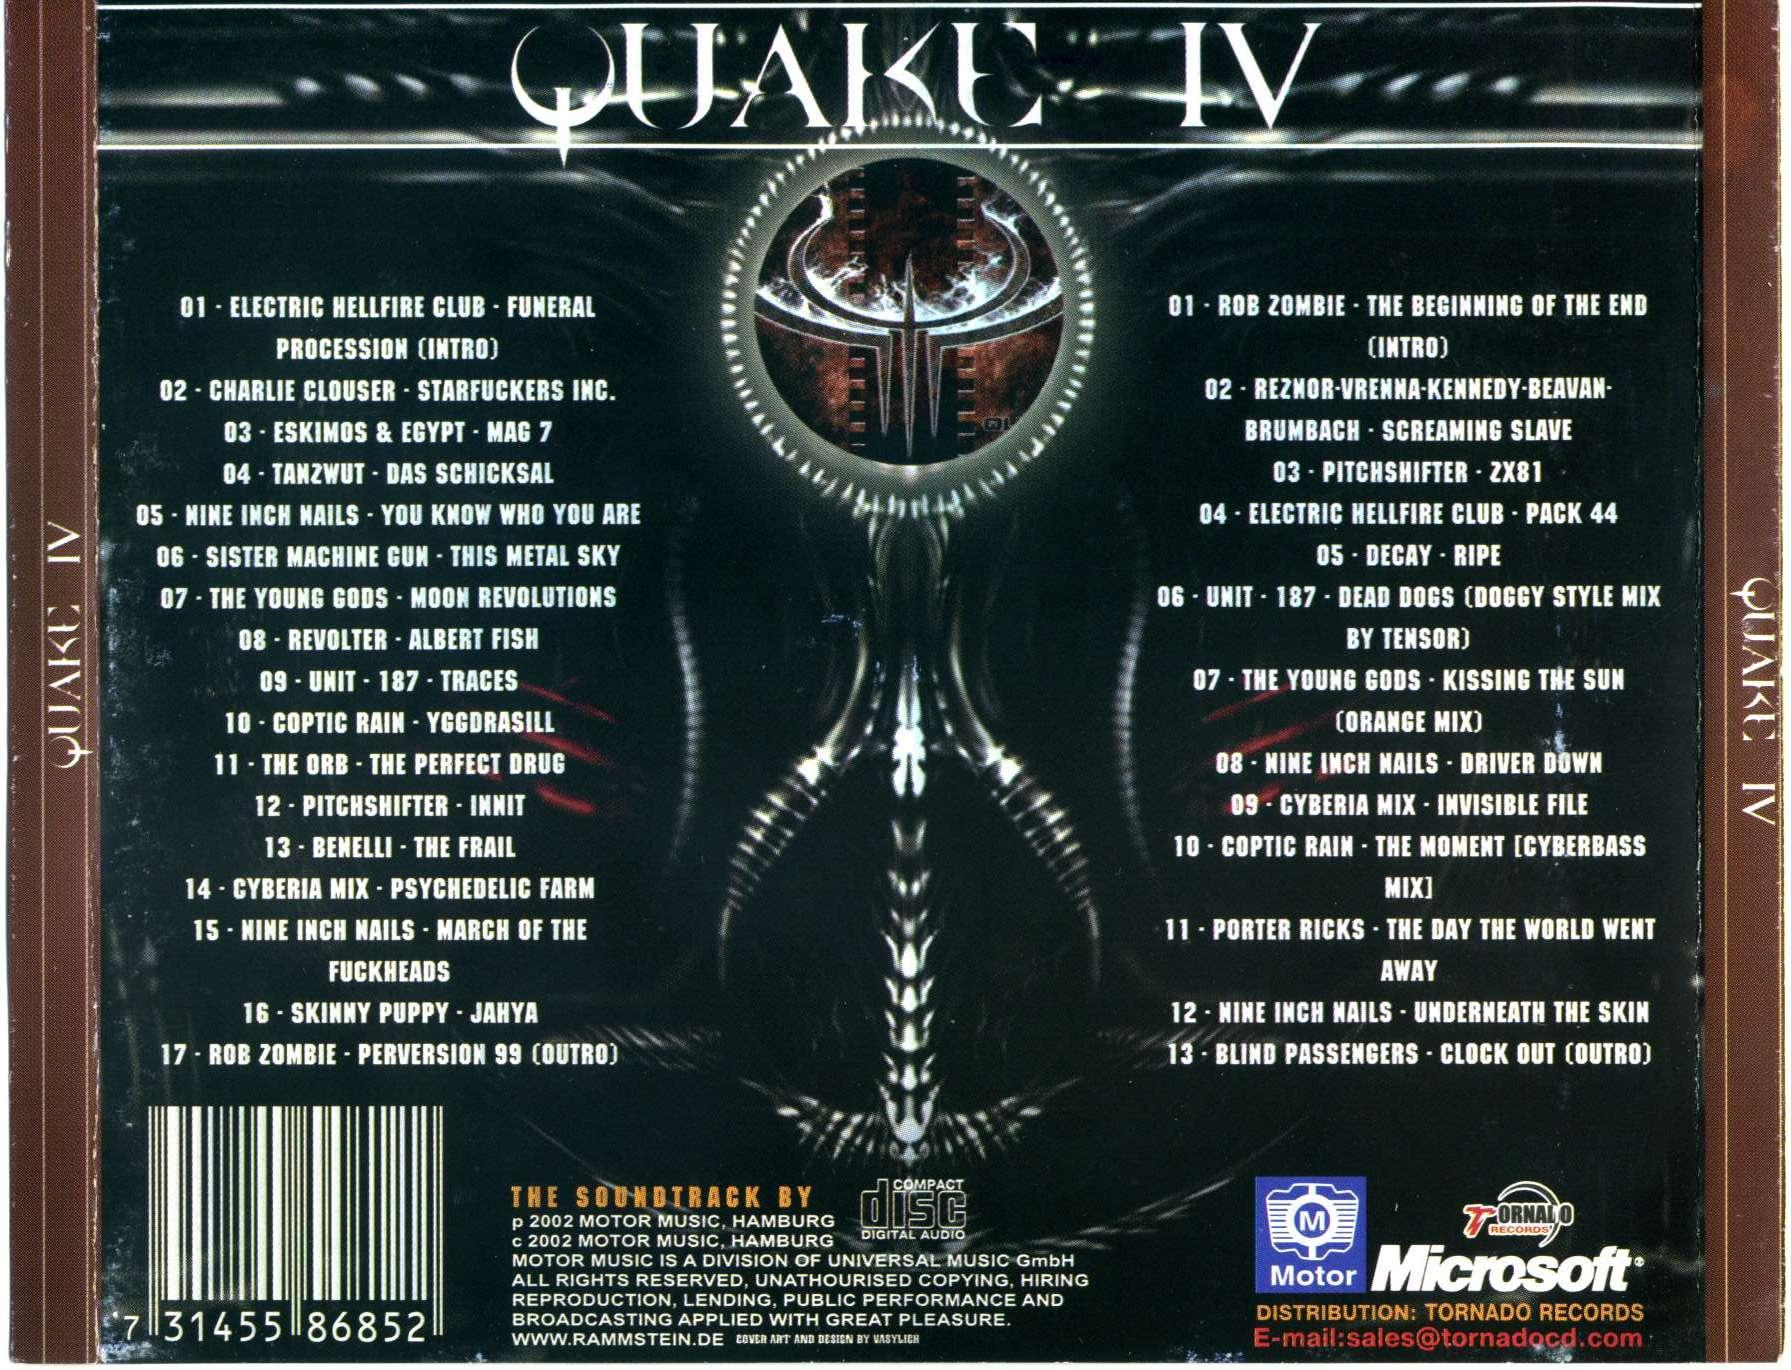 Quake IV - Soundtrack For a Video Game  Soundtrack from